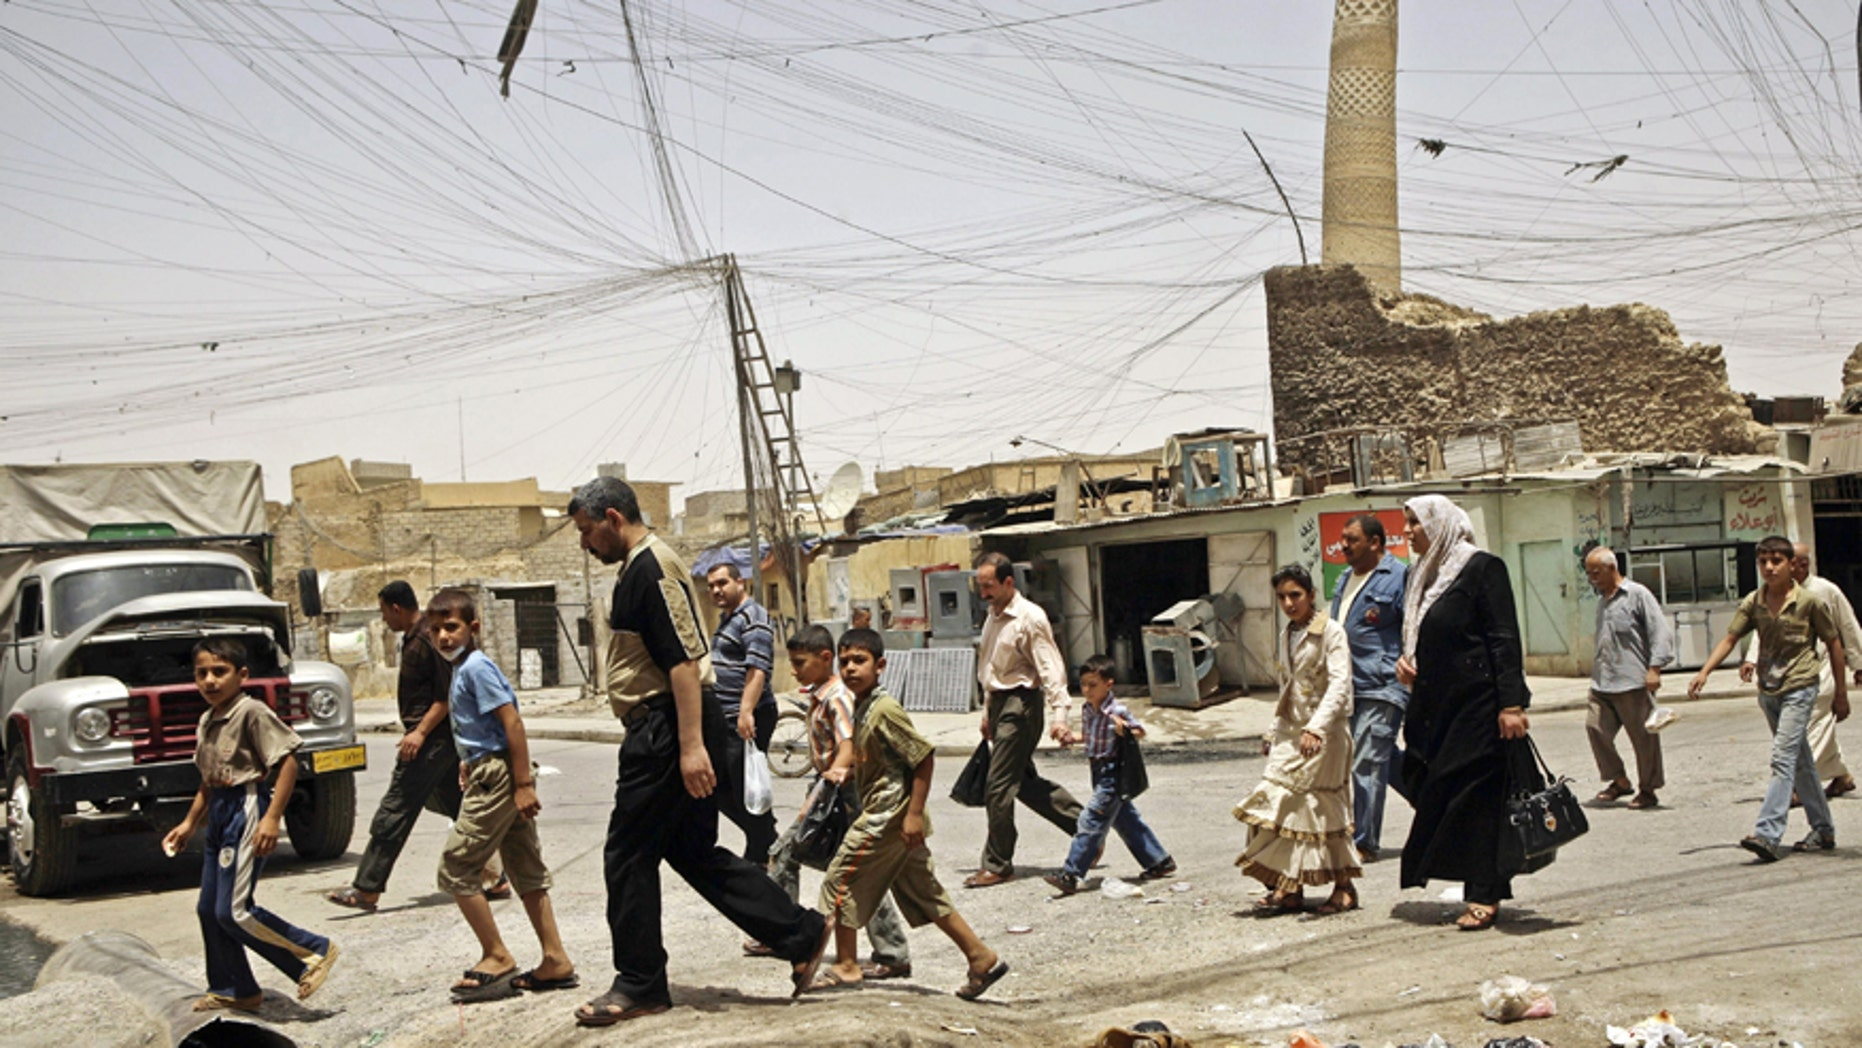 FILE -- In this June 8, 2009 file photo, residents walk past the tilted minaret of al-Nuri mosque — also known as the Great Mosque — in Mosul, Iraq. A resident in the Islamic State-held Mosul's Old City says the militants have blocked the area around the highly symbolic mosque where the group's leader Abu Bakr al-Baghdadi made his first and only public appearance. (AP Photo/Maya Alleruzzo, File)